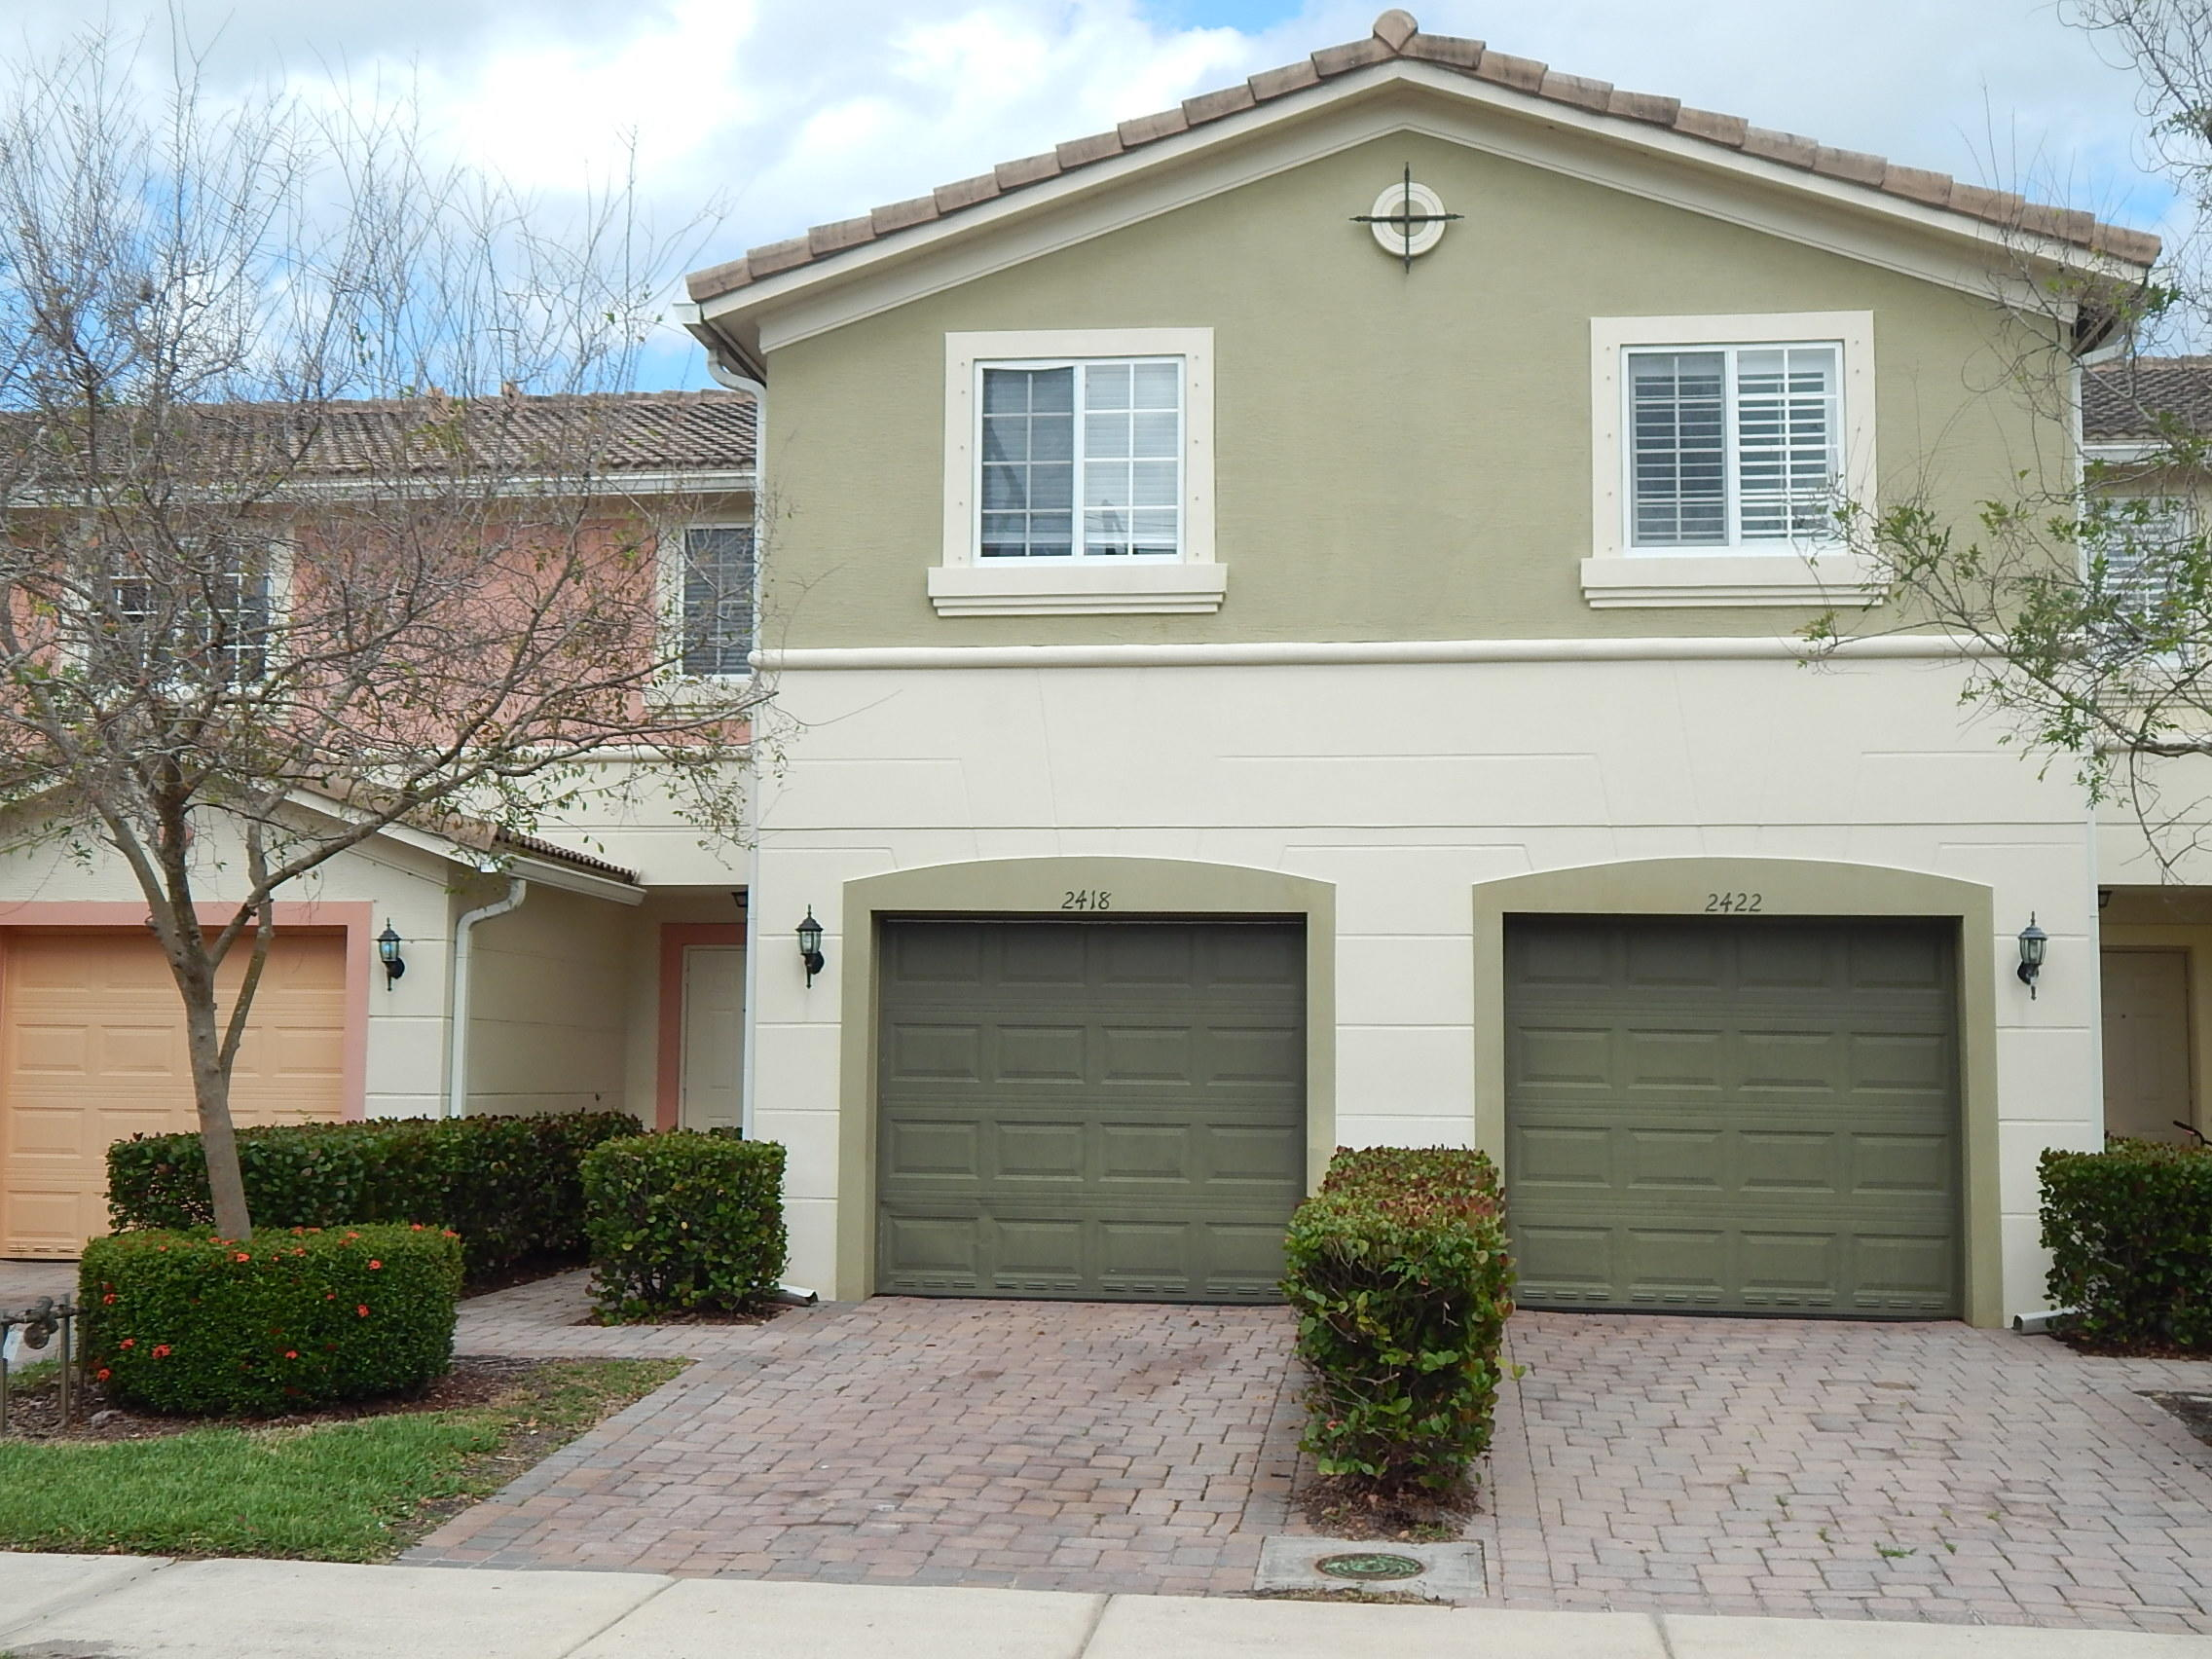 2418 SW Marshfield Court, Port Saint Lucie, Florida